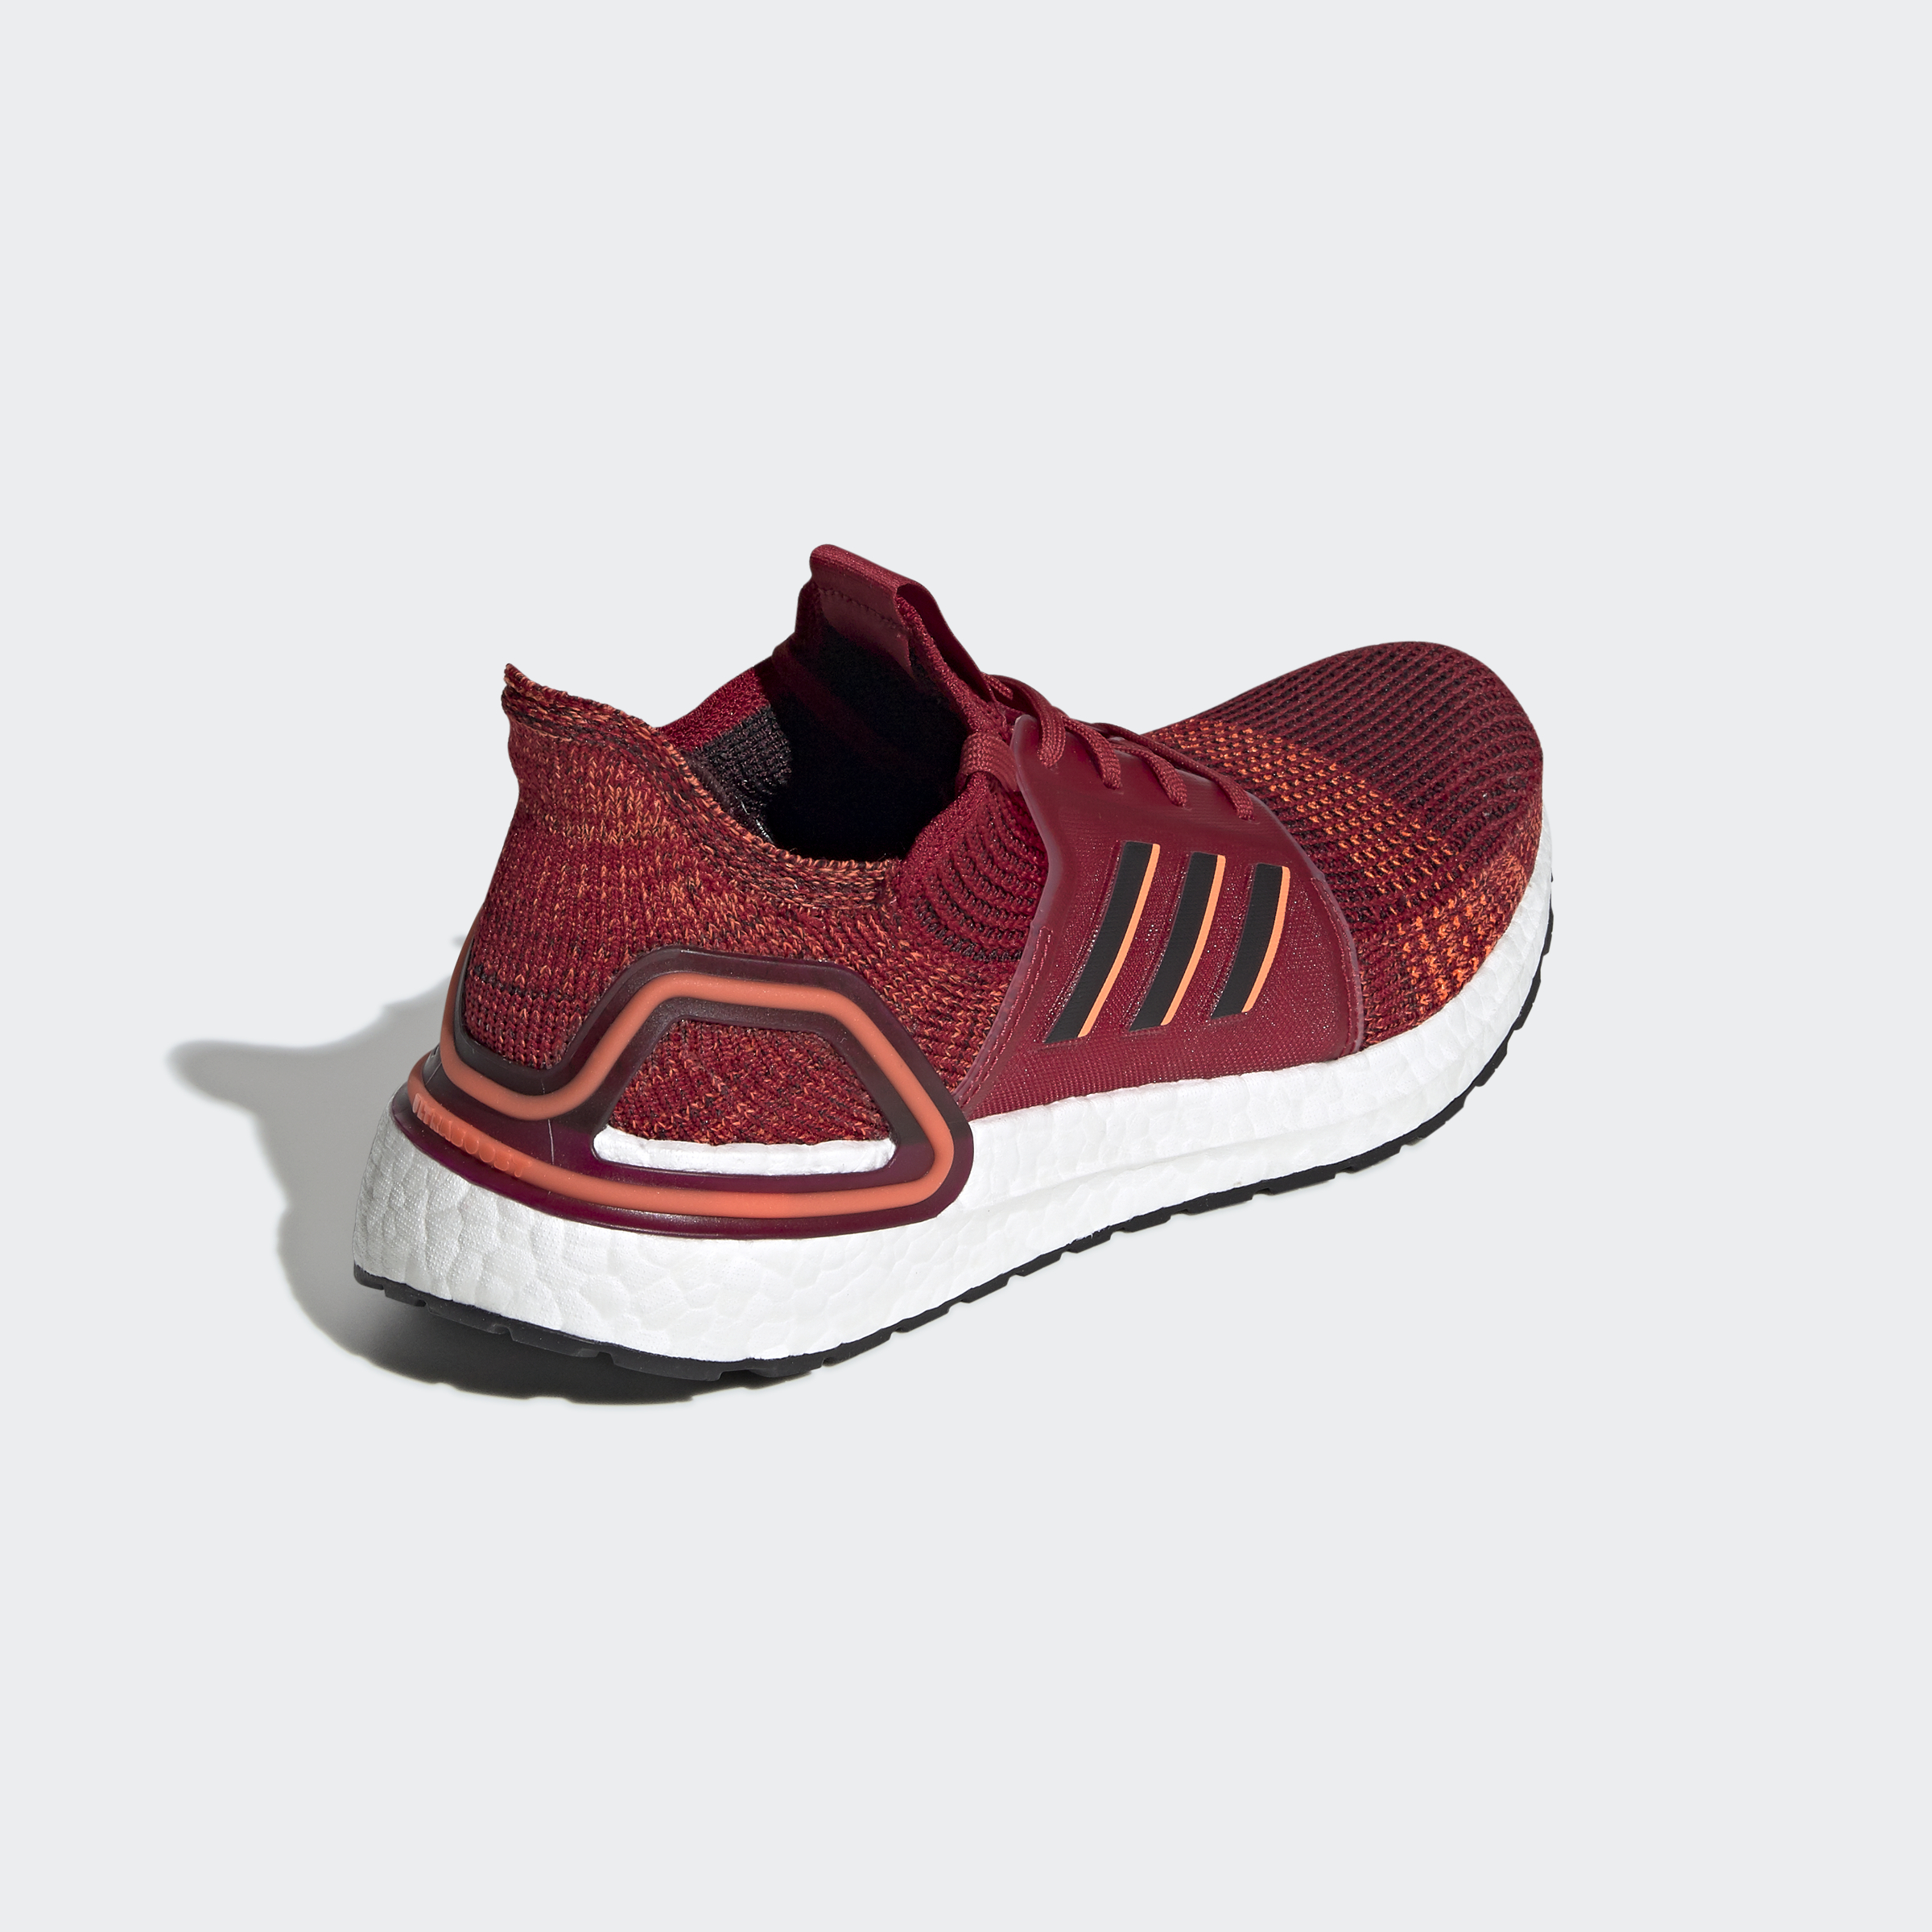 adidas-Ultraboost-19-Shoes-Athletic-amp-Sneakers thumbnail 96